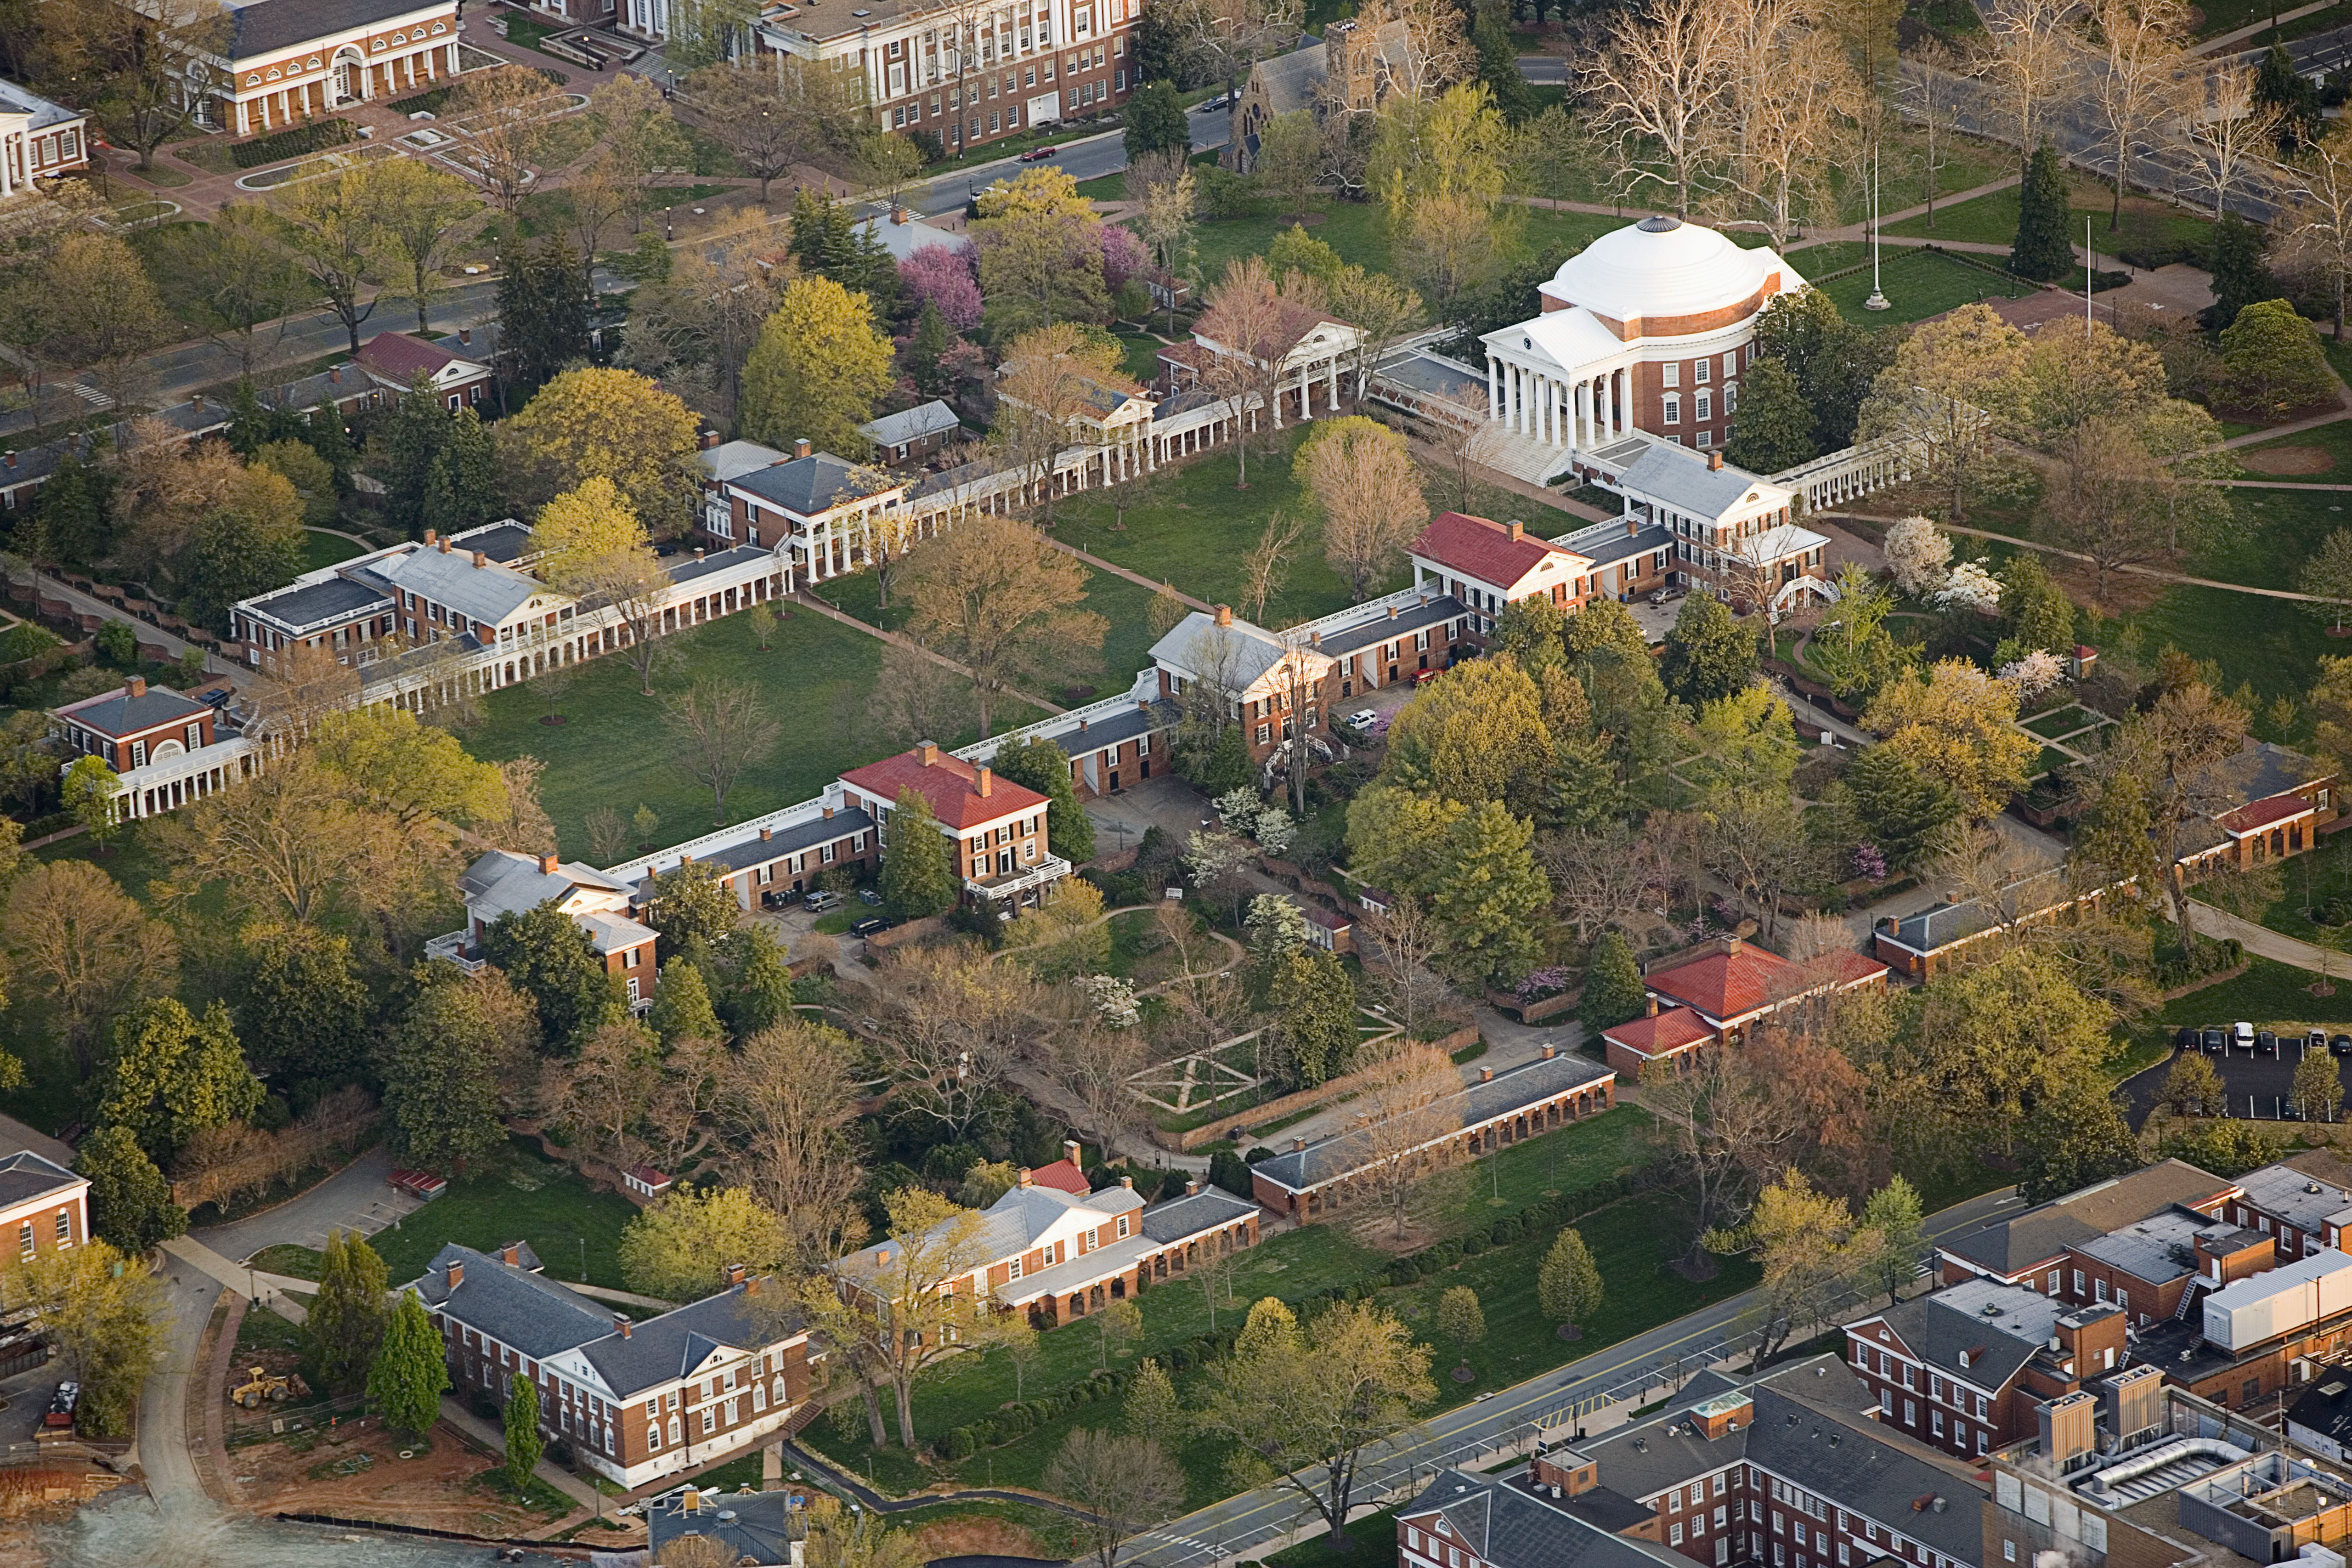 aerial view of landscaped campus headed by a white domed building